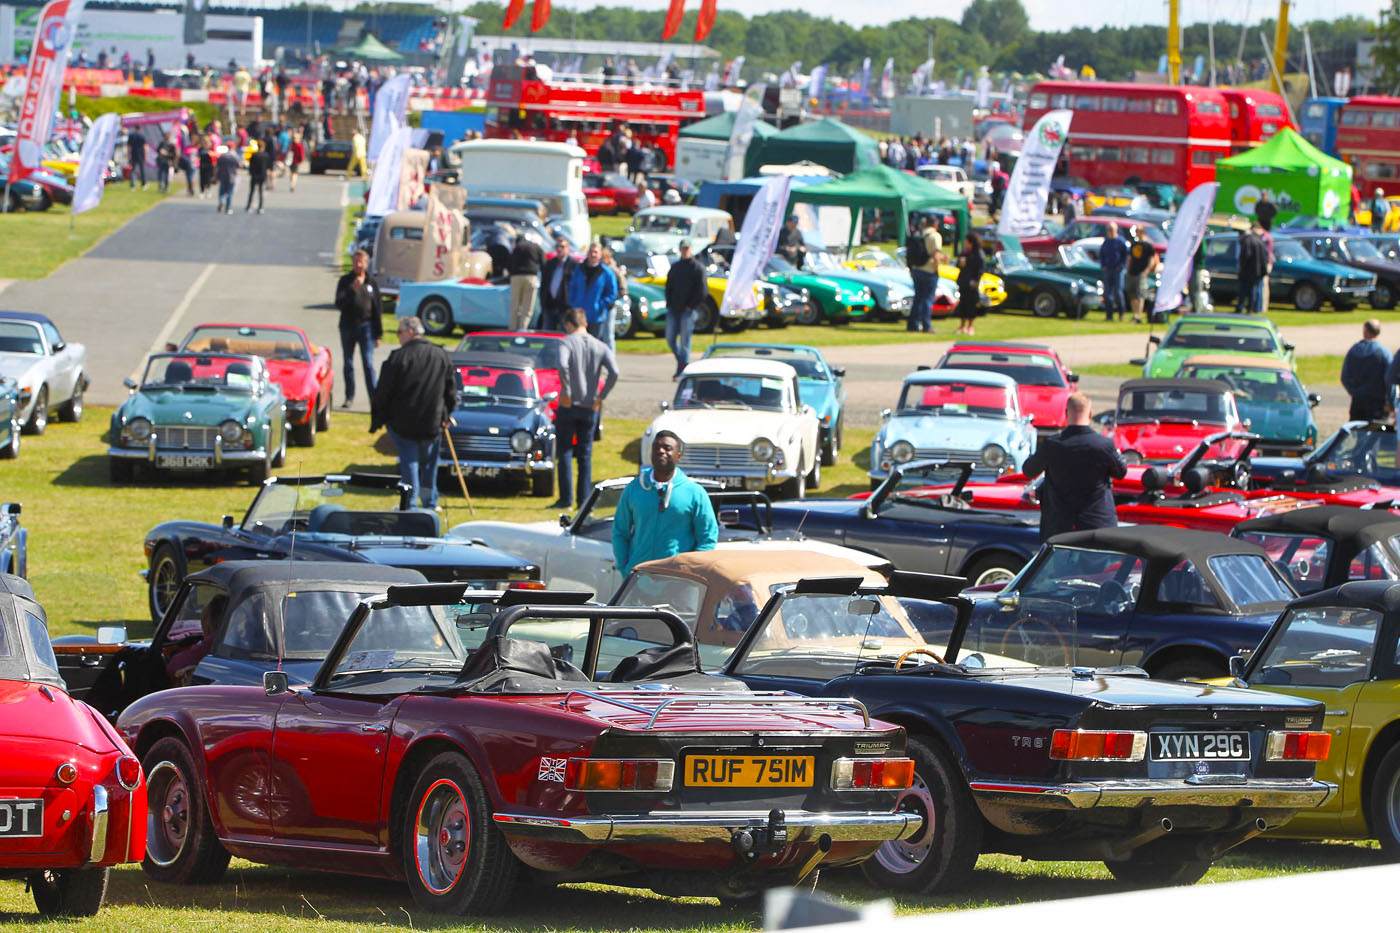 Definitive Guide To The VIP Experience At The 2016 Silverstone Classic 5